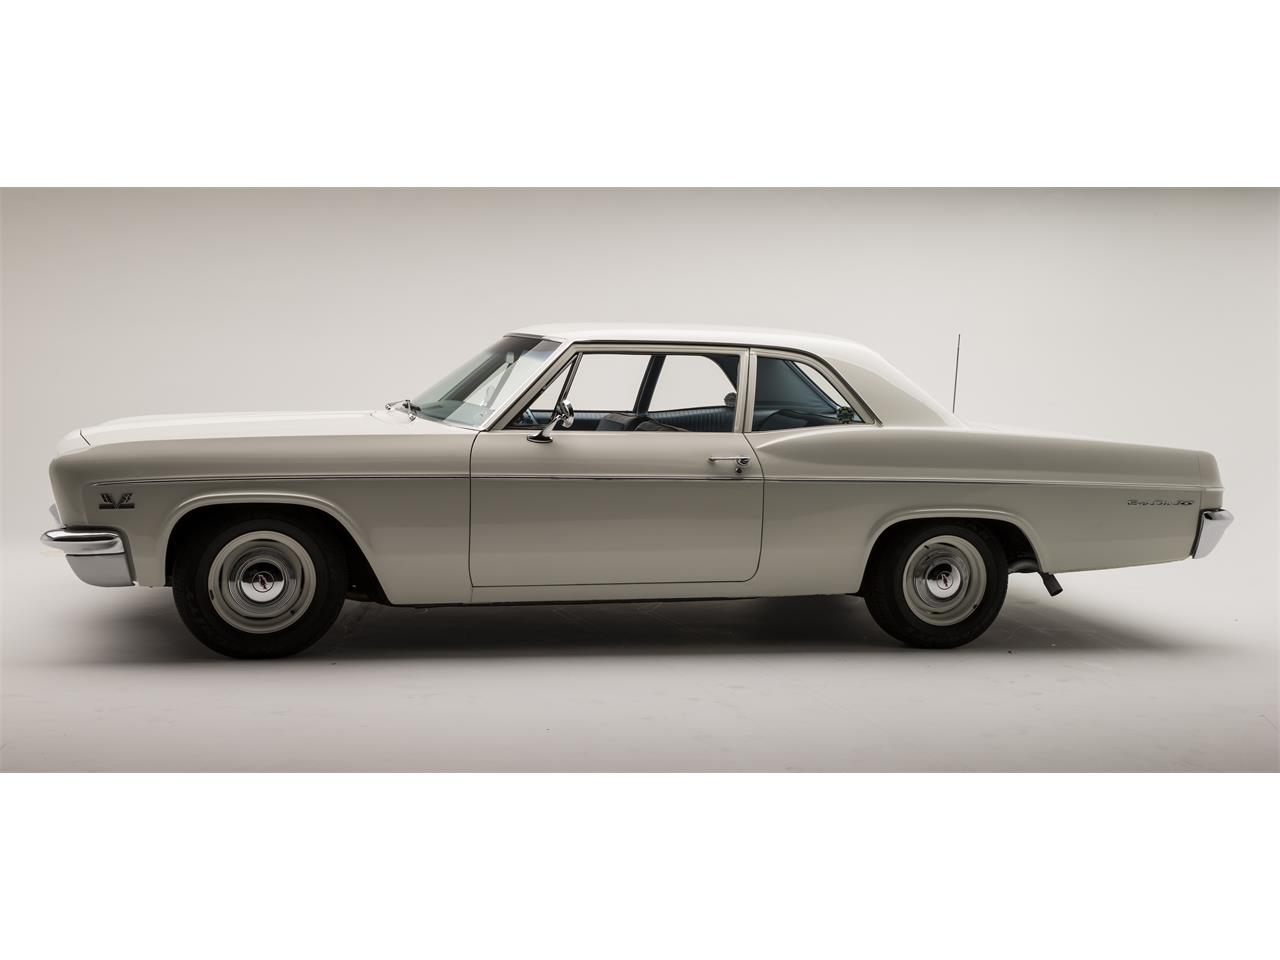 Large Picture of 1966 Chevrolet Bel Air Offered by Classic Car Marketing, Inc. - JBKE